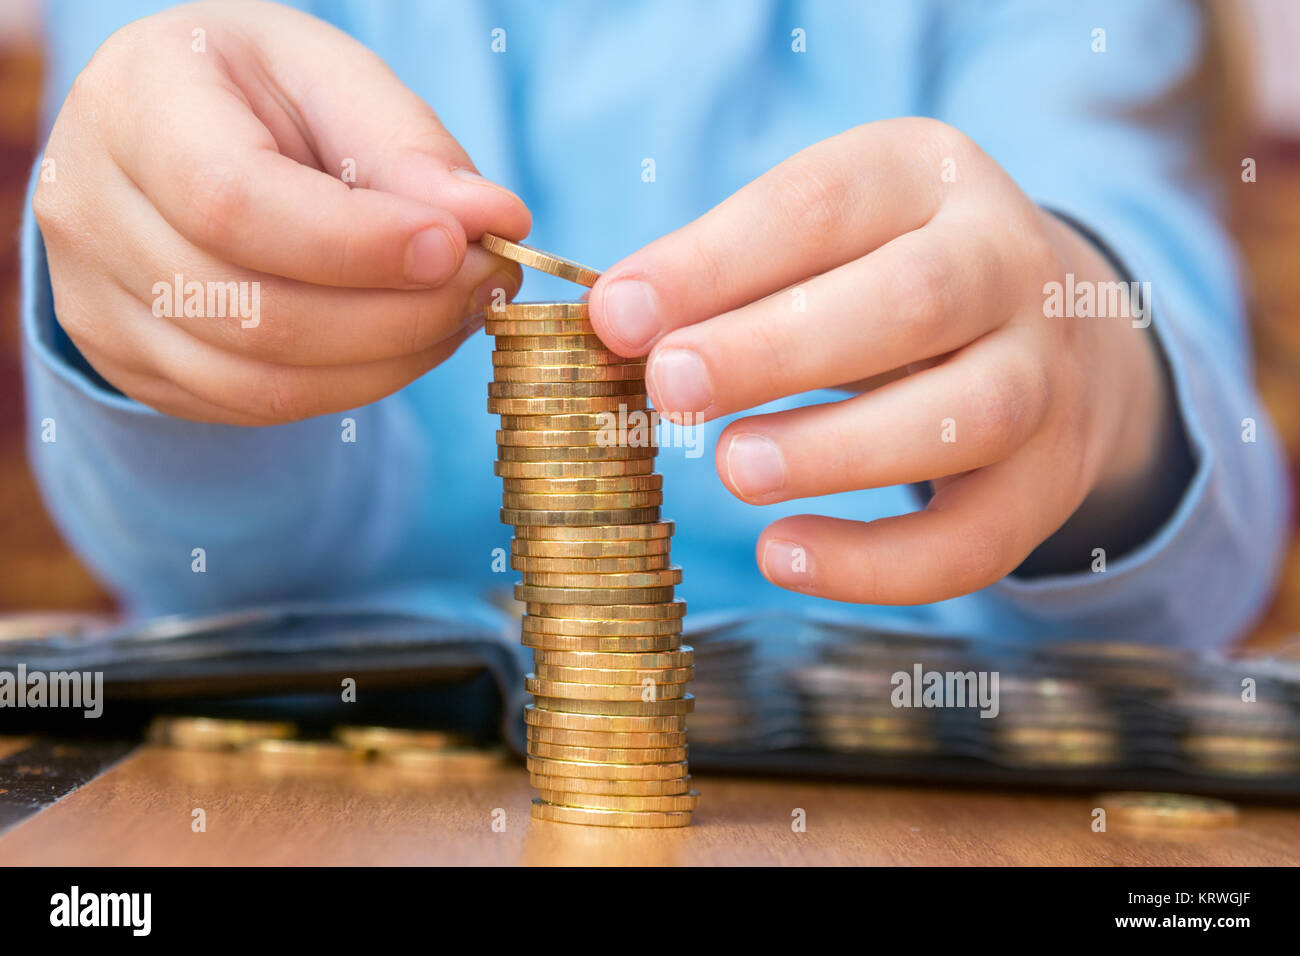 Child amassed a large pile of gold coins, close-up - Stock Image